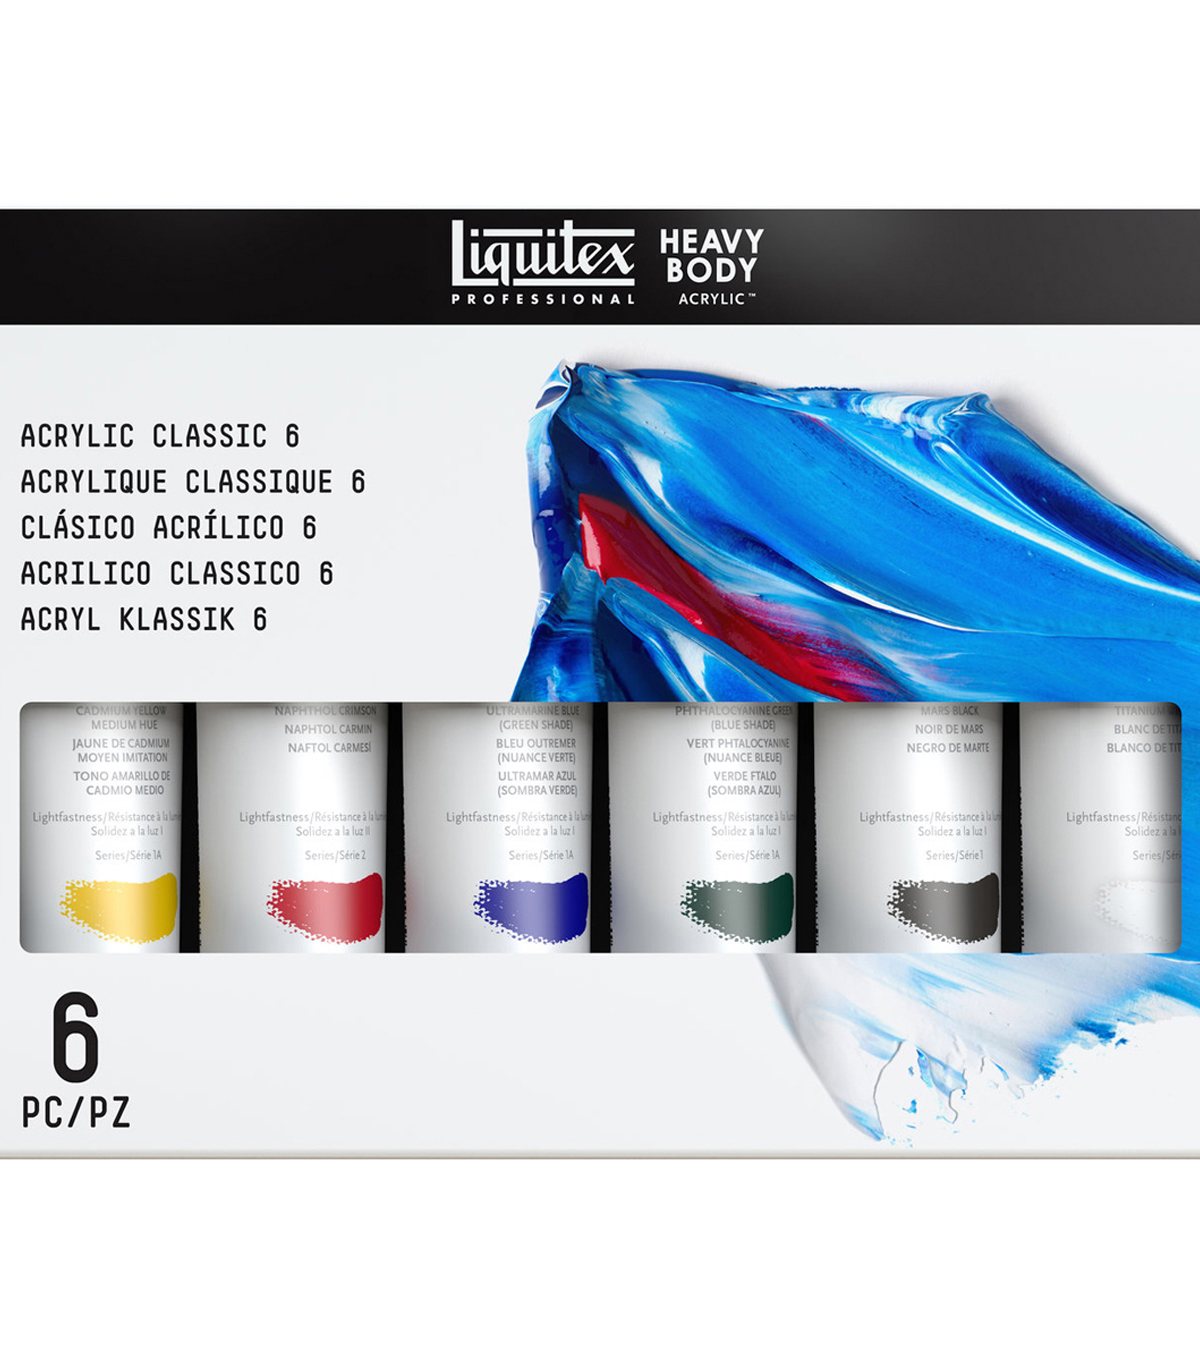 Liquitex Heavy Body Acrylic Paint 59ml 6 Pack-Classic 6